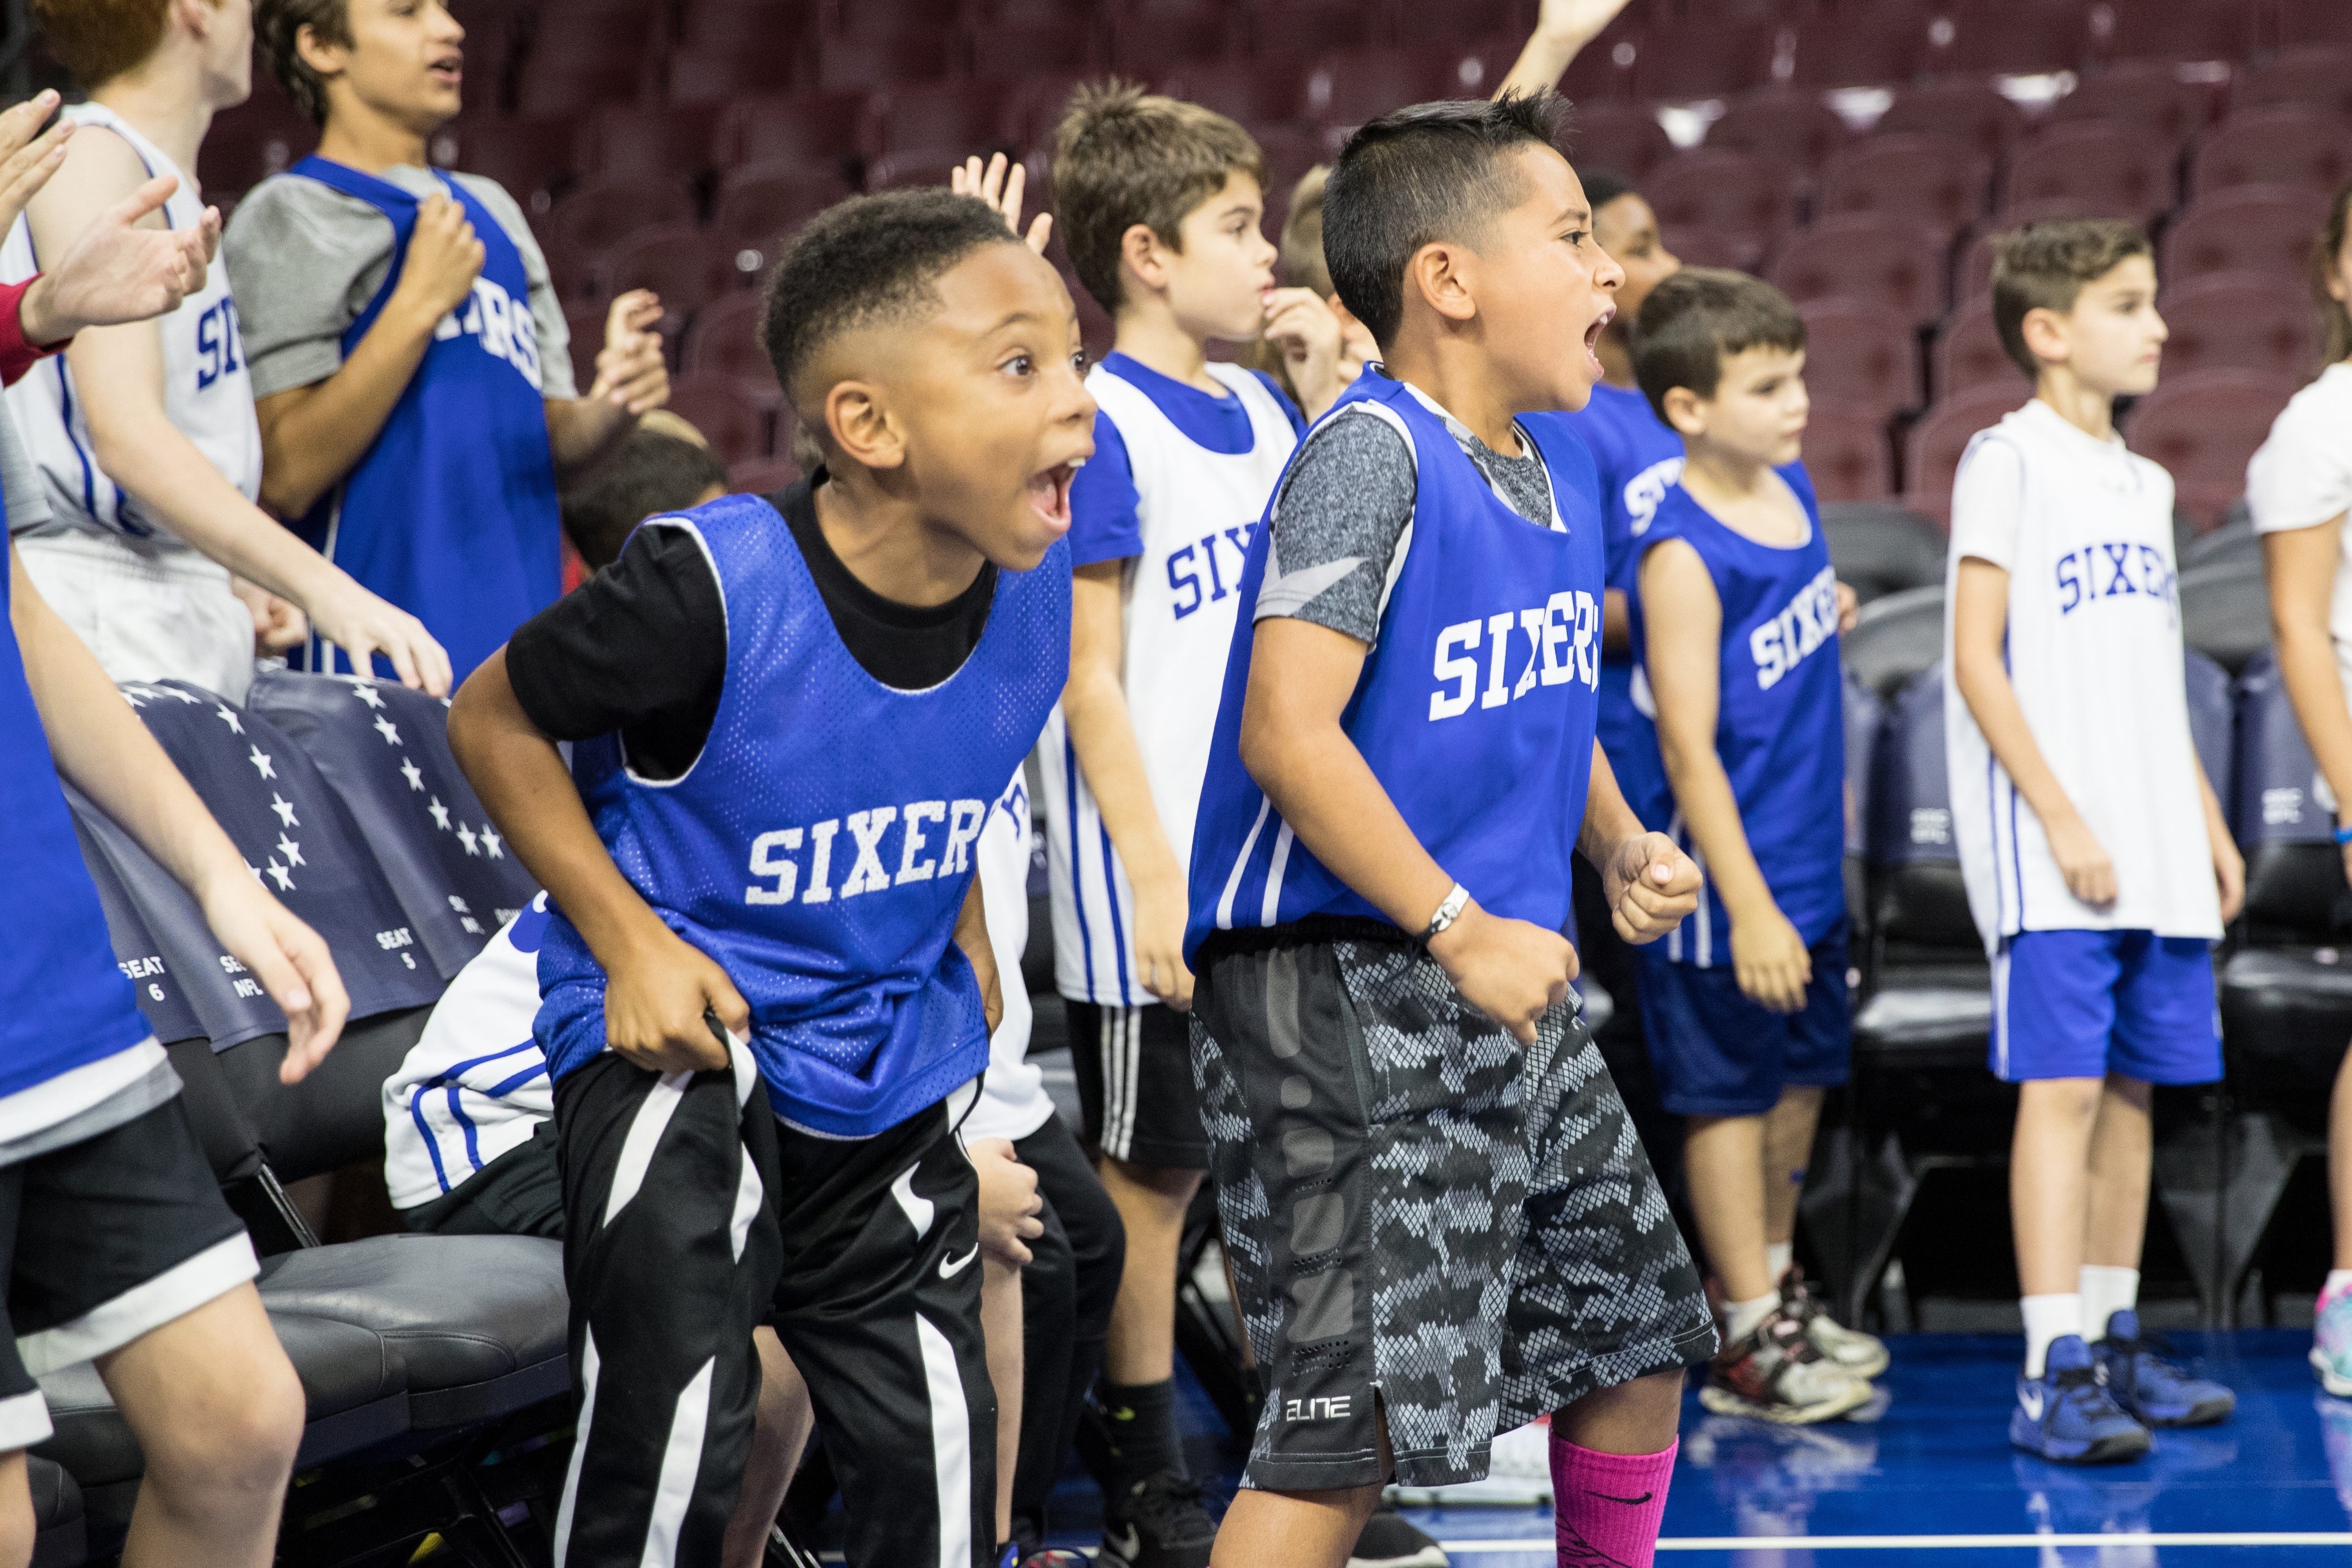 a86caf0c3 ESF Camps and Philadelphia 76ers Announce Details For 76ers Basketball  Camps